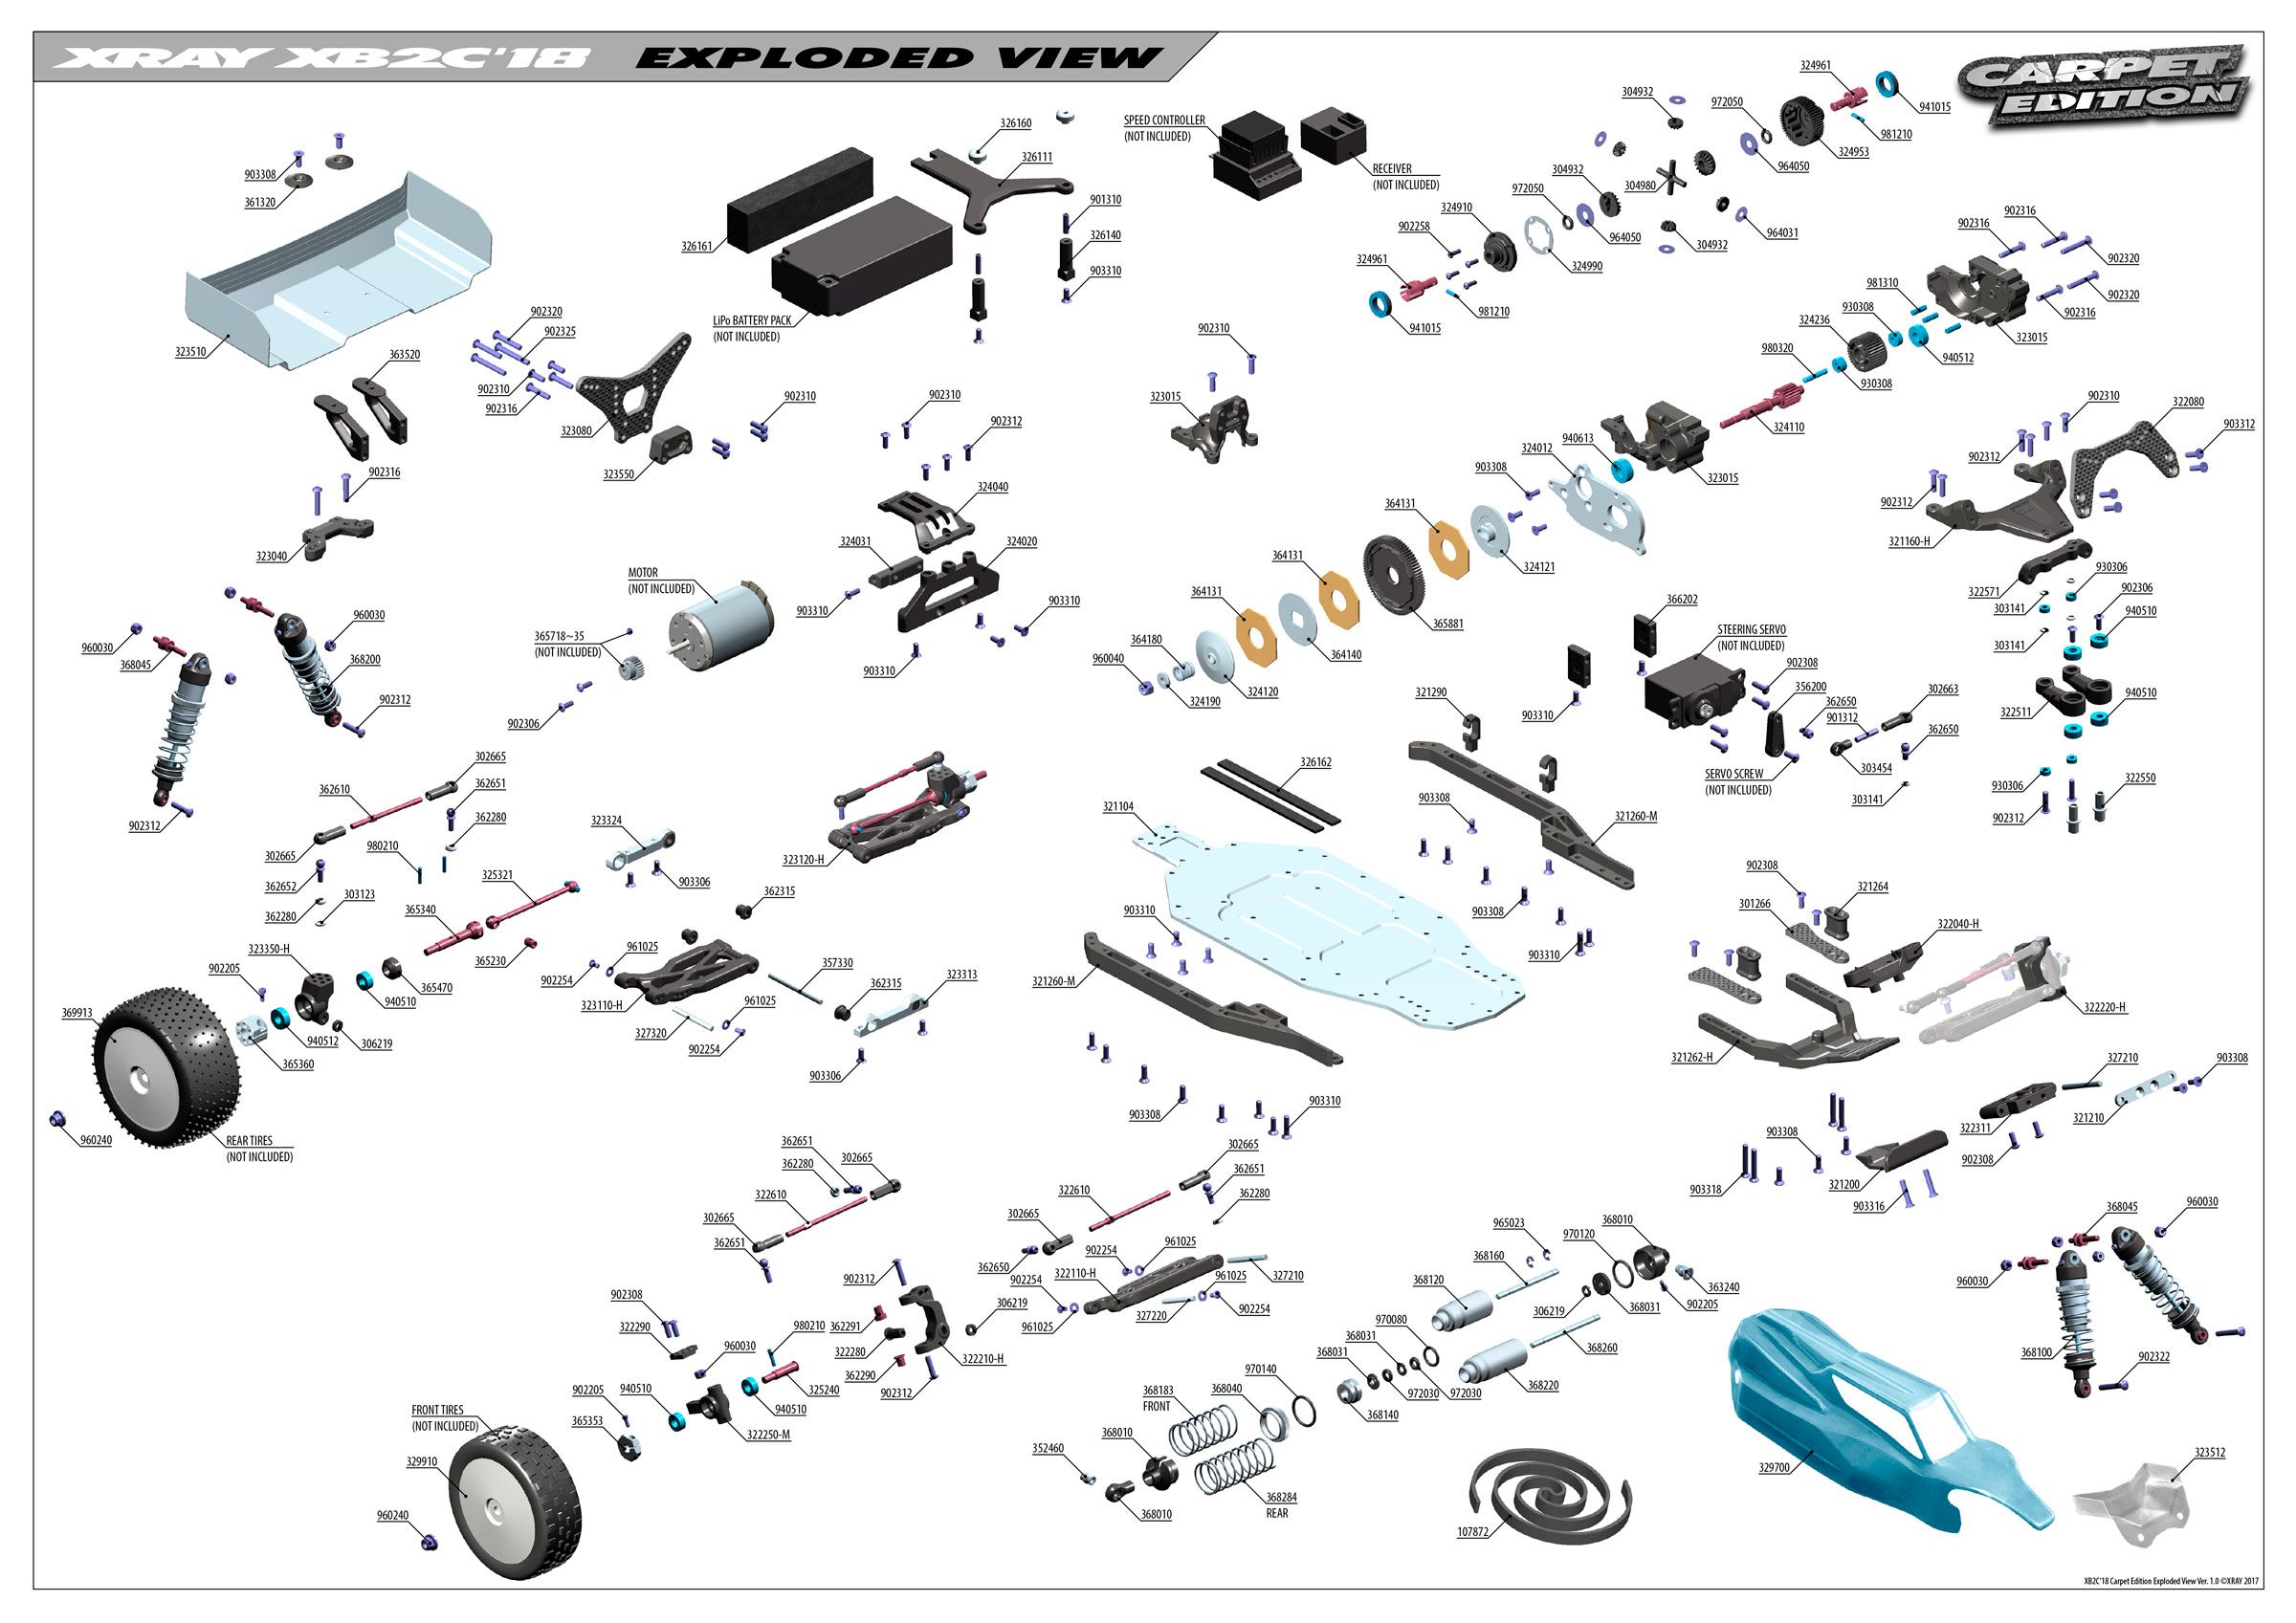 XR_320004_Exploded_View